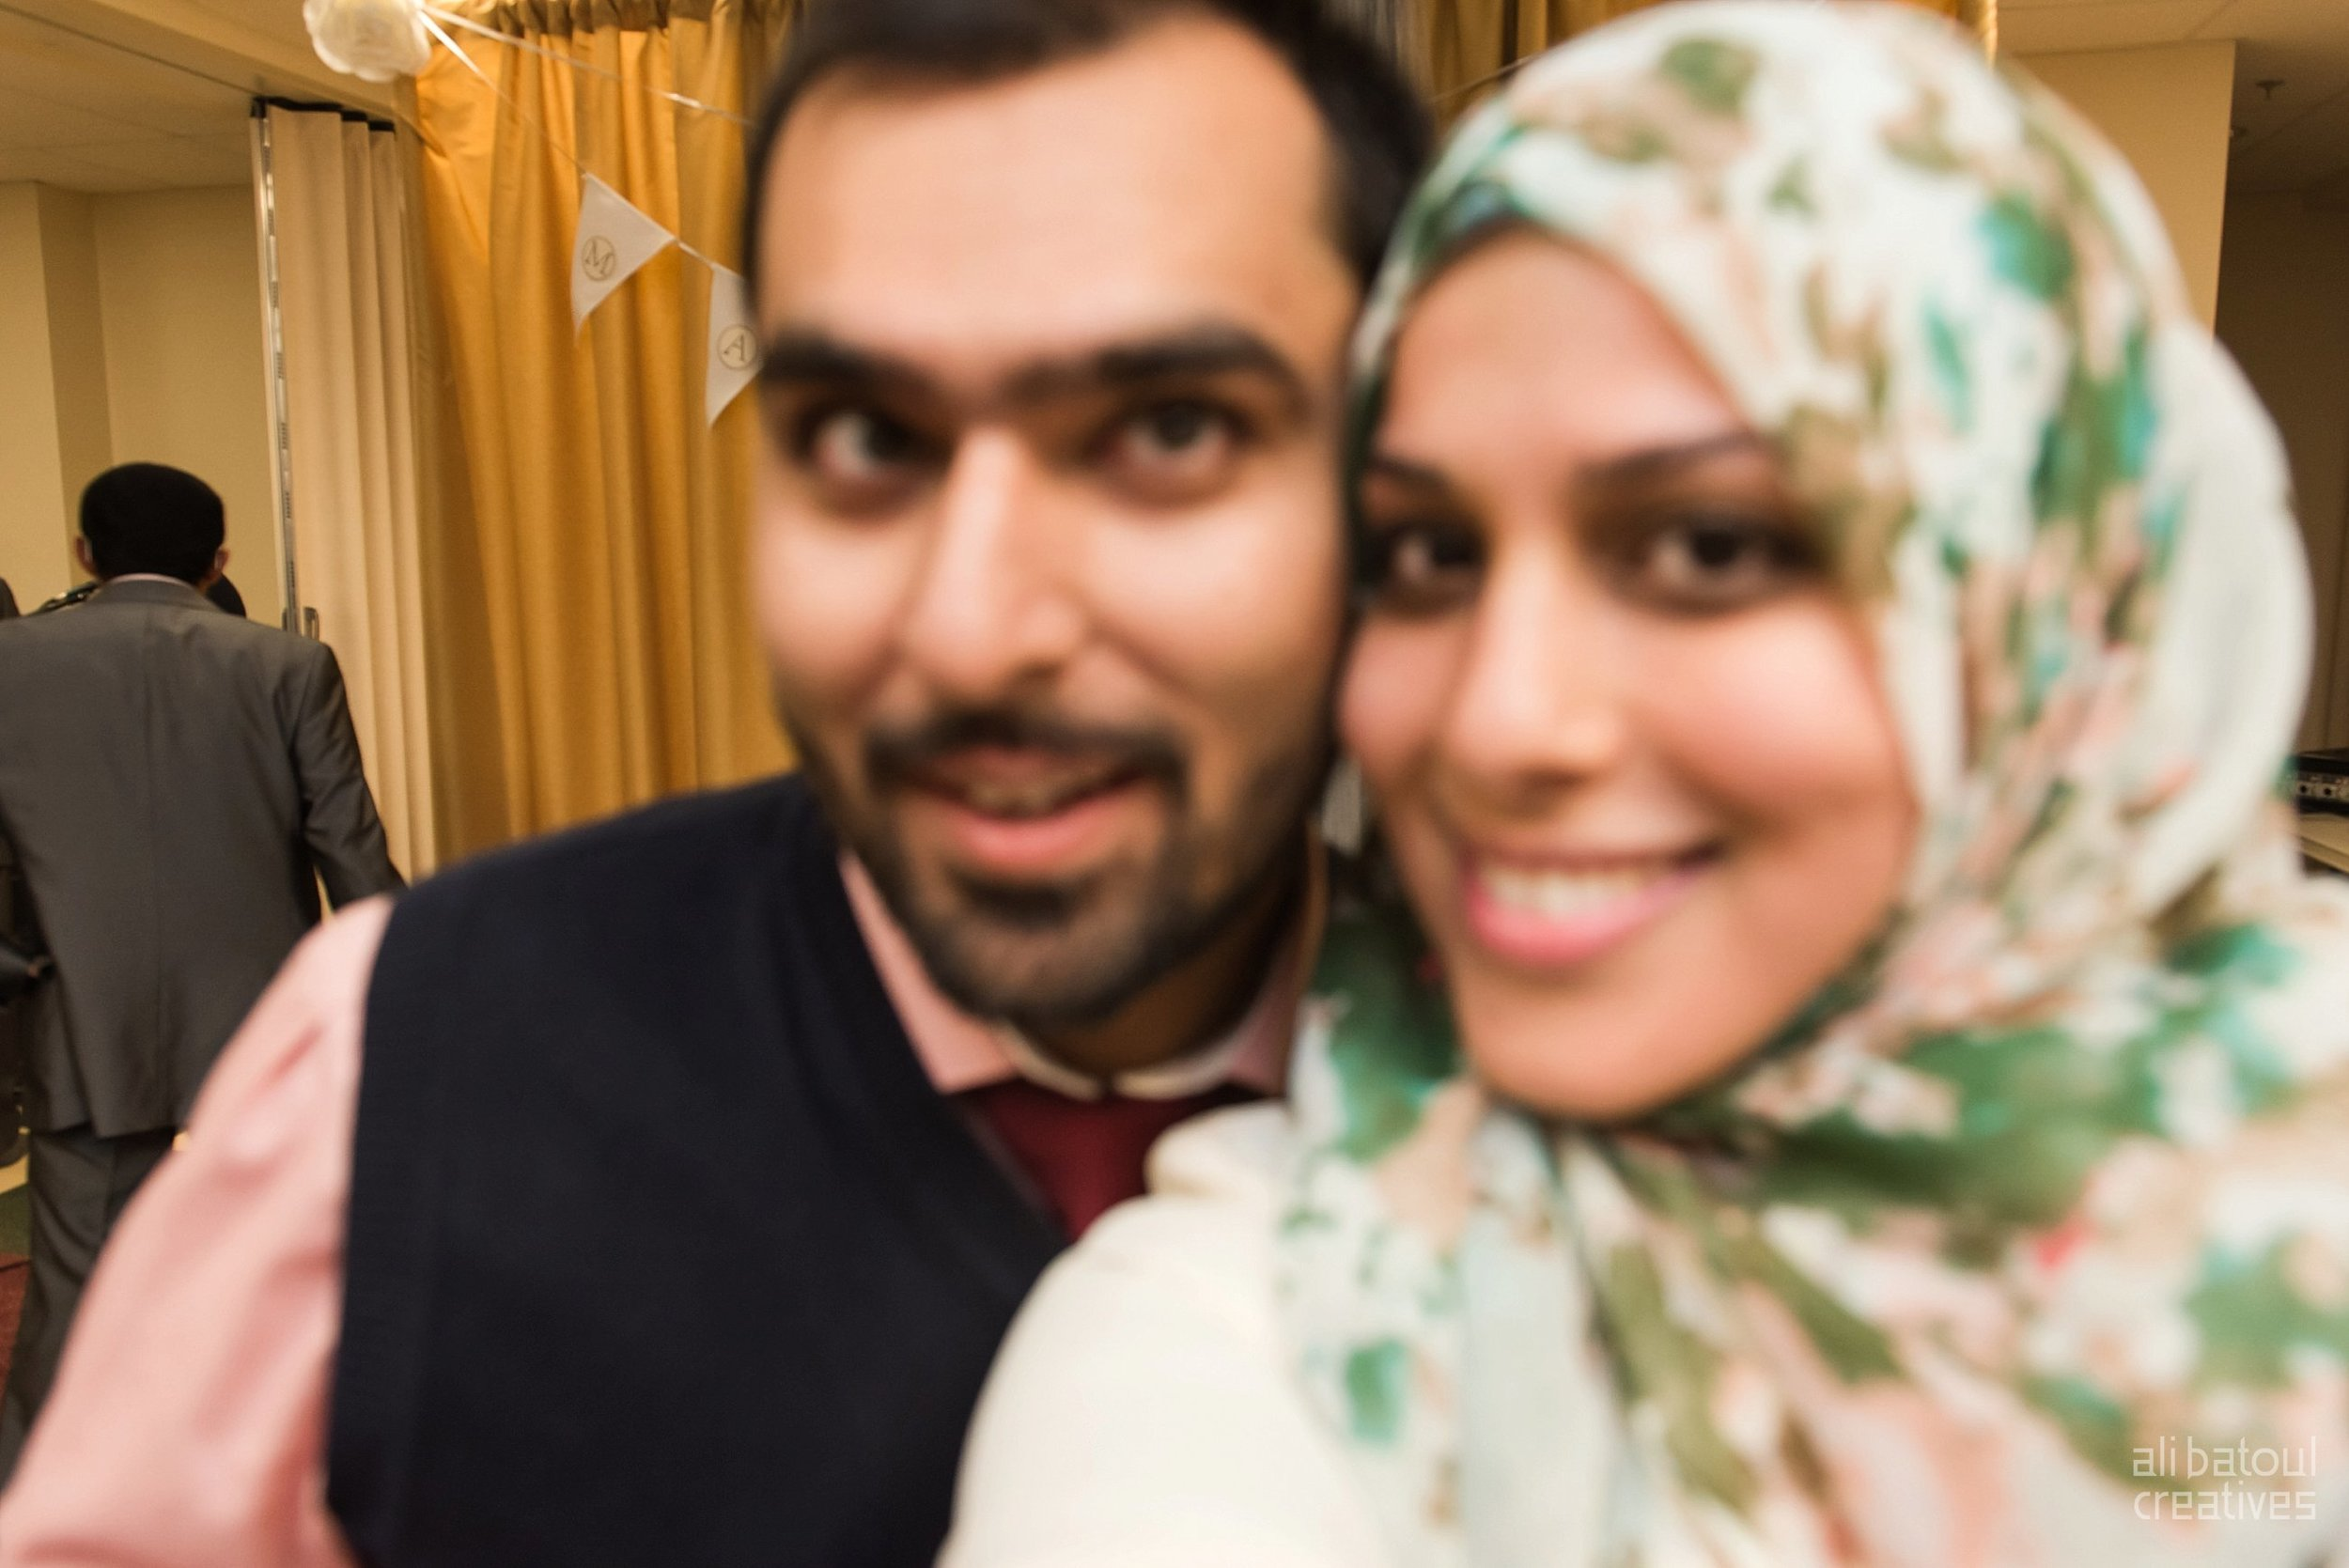 Trying to selfie it with a DSLR. Doesn't work all the time!